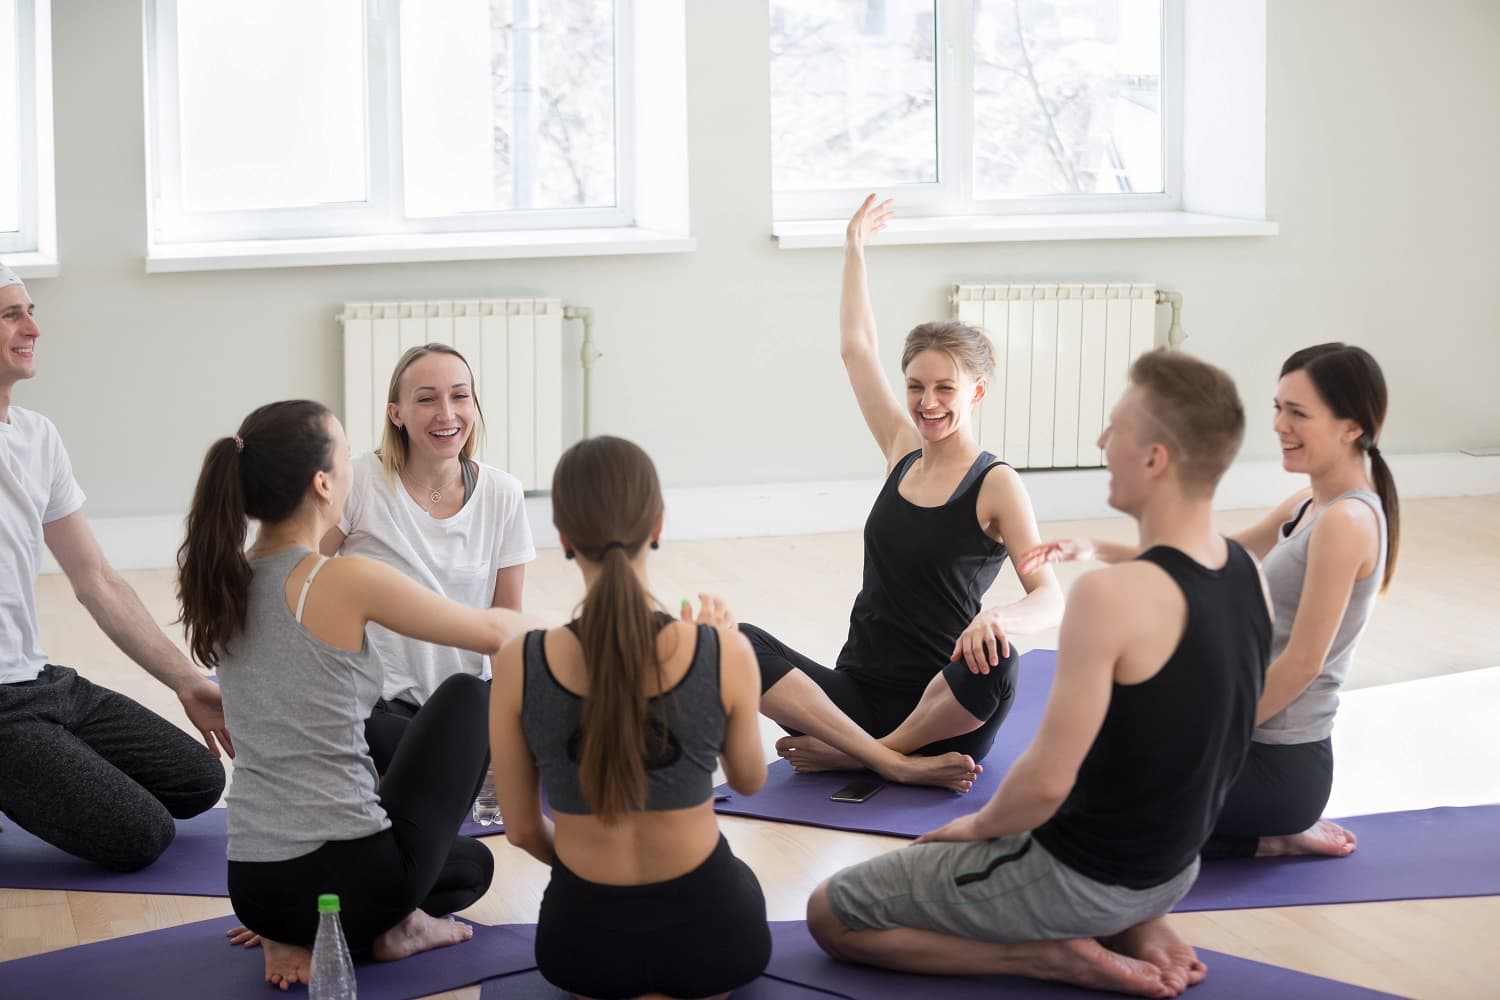 What is laughter yoga?